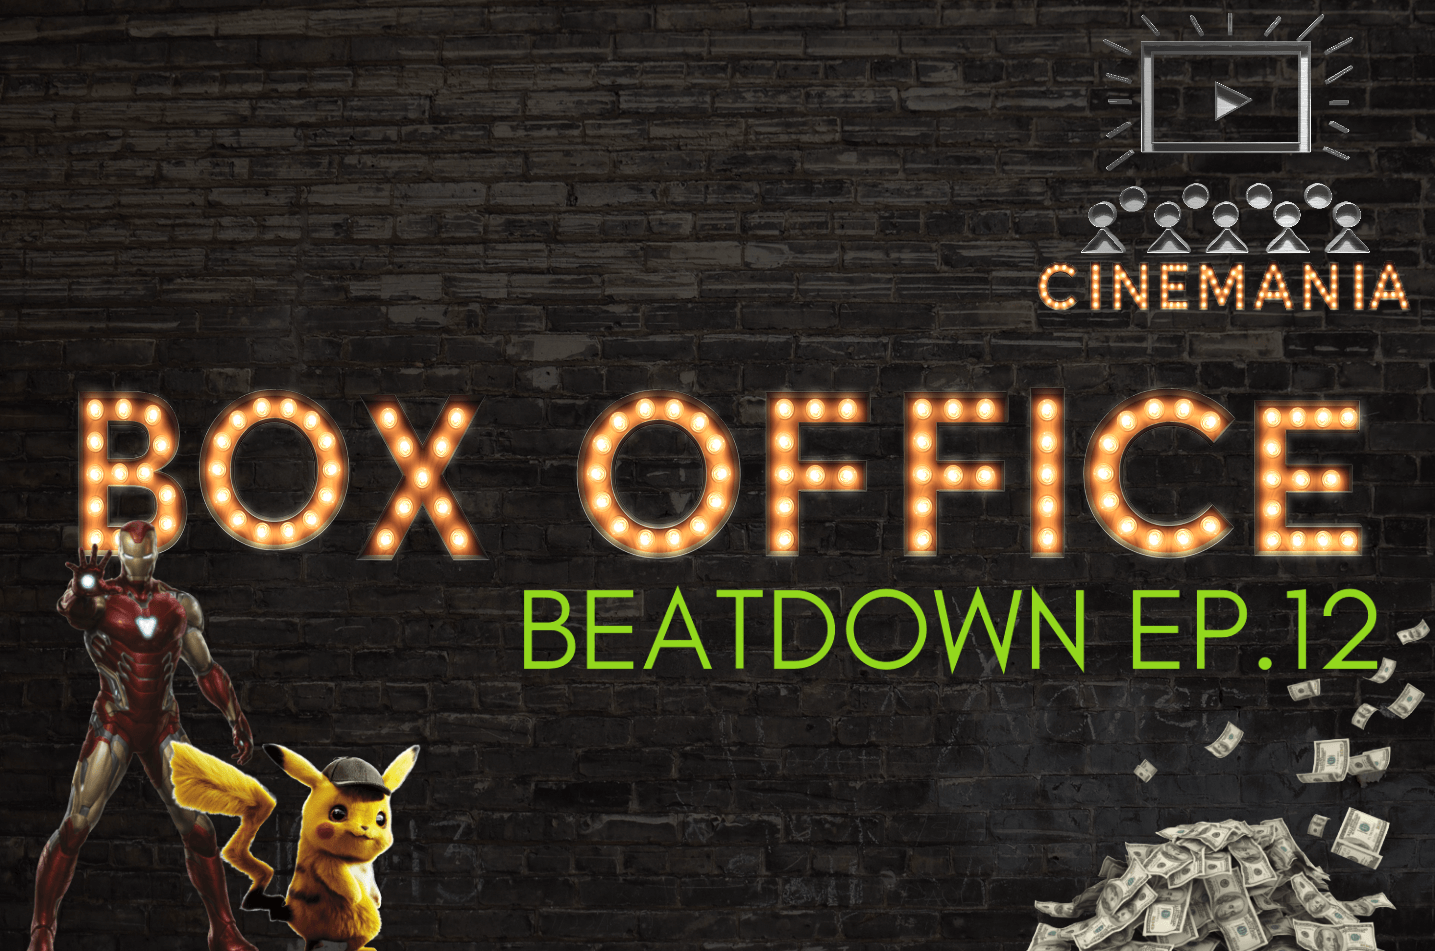 """Box Office Beatdown Ep.12 """"Avengers: Endgame Holds the #1 Spot in it's 3rd Weekend!"""""""